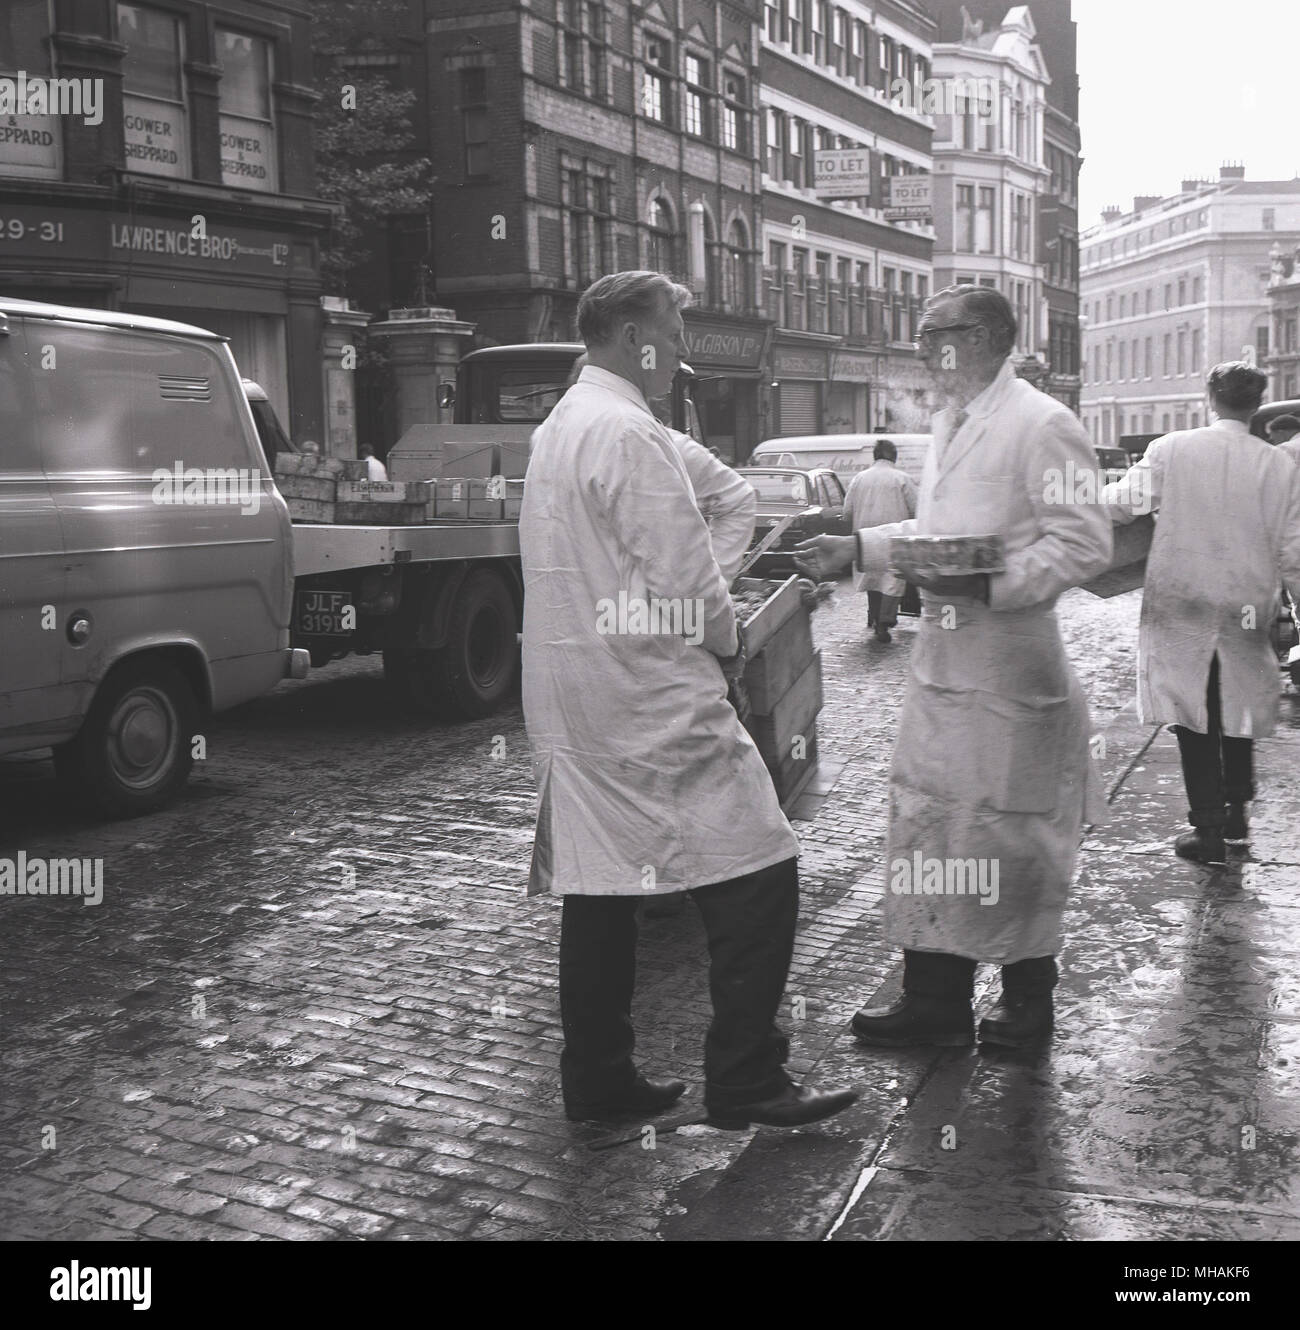 1950s, historical, two fish merchants in overalls stand chatting on a cobbled street outside the Billingsgate wholesale fish market, Lonond, England, UK. Stock Photo